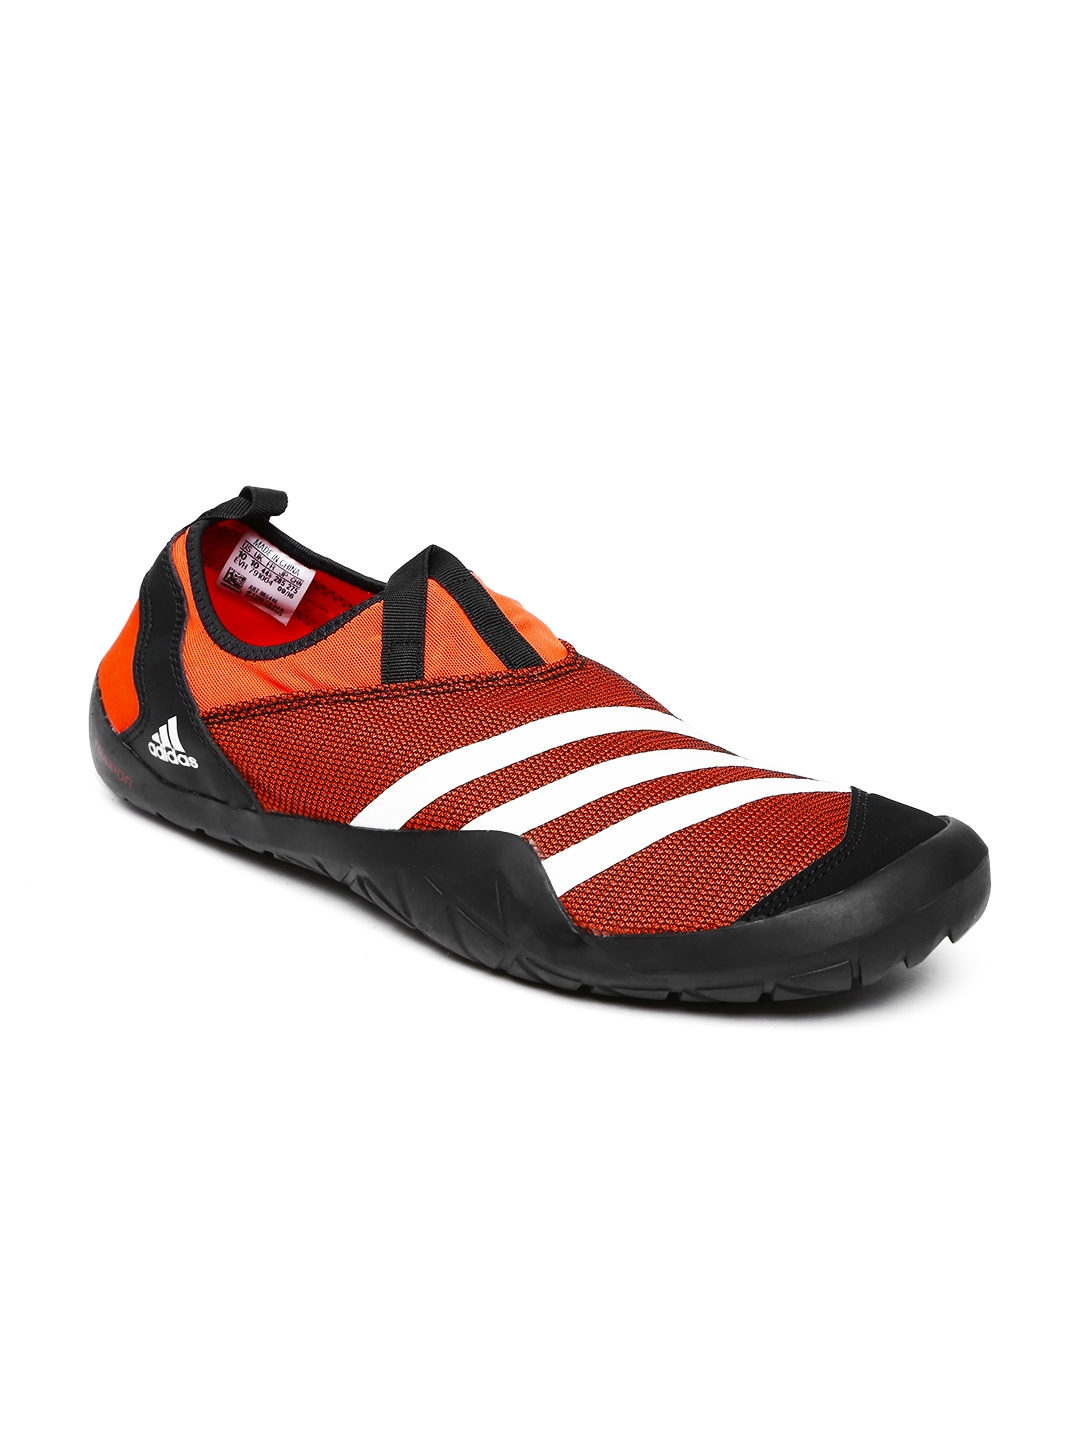 new arrival 3783e e295a ADIDAS Unisex Orange Climacool Jawpaw Textured Slip-On Sneakers